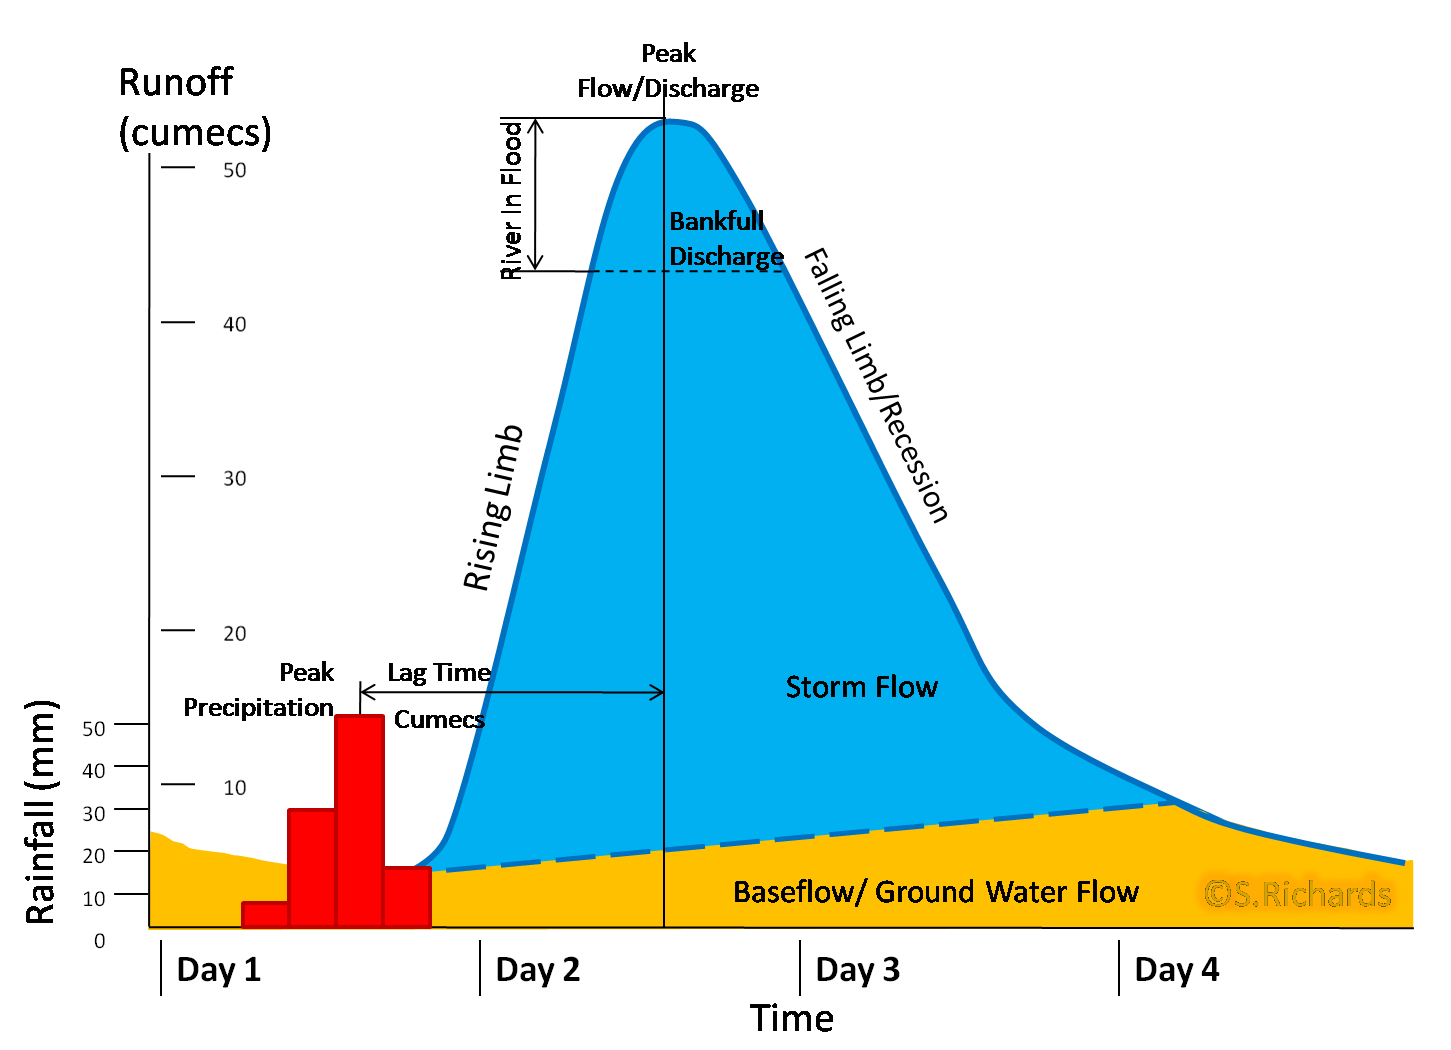 (http://blackpoolsixthasgeography.pbworks.com/f/1265744759/Storm%20Hydrograph.png)